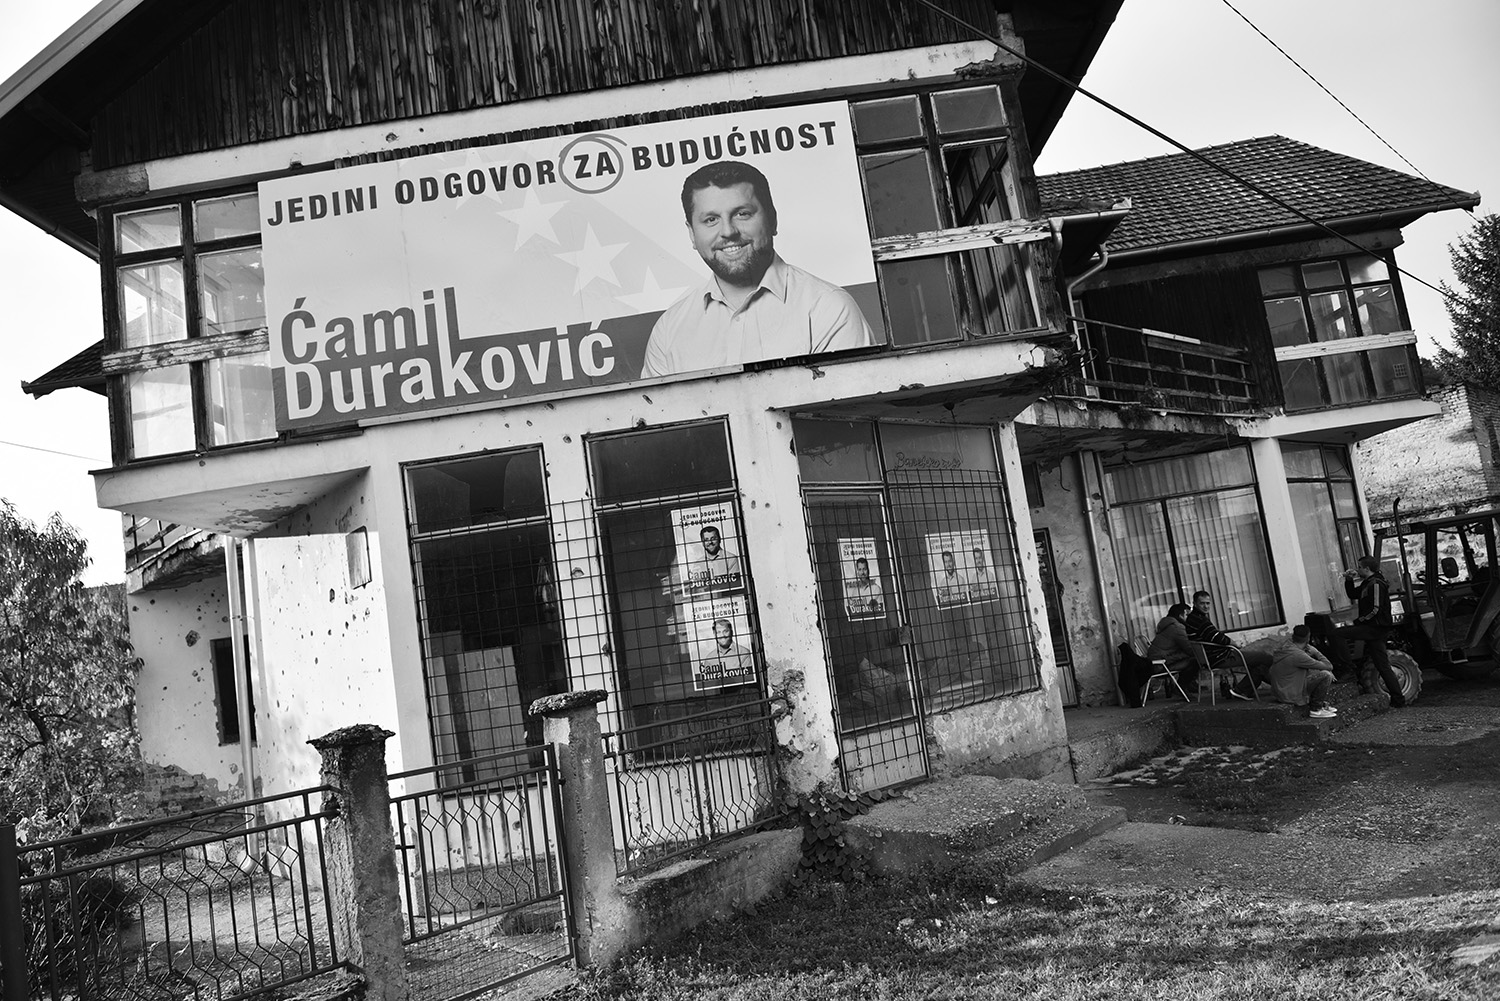 Election posters of the current mayor of Srebrenica Camila Durakovic at the damaged house in Potocari, near Srebrenica. He had the unanimous support of Bosniaks, while the Mladen Grujicic was backed by all 10 local Serbian political parties and community groups. According to preliminary results from the October 2 election, Mladen Grujicic is on track to become the town's next mayor. Some Bosniaks in the municipality of Srebrenica believes that the election process was an irregularity, but they are more afraid of will the new Mayor take care of the Memorial Center in Potocari where has buried more than 6,300 Bosniaks killed in the genocide in July 1995.